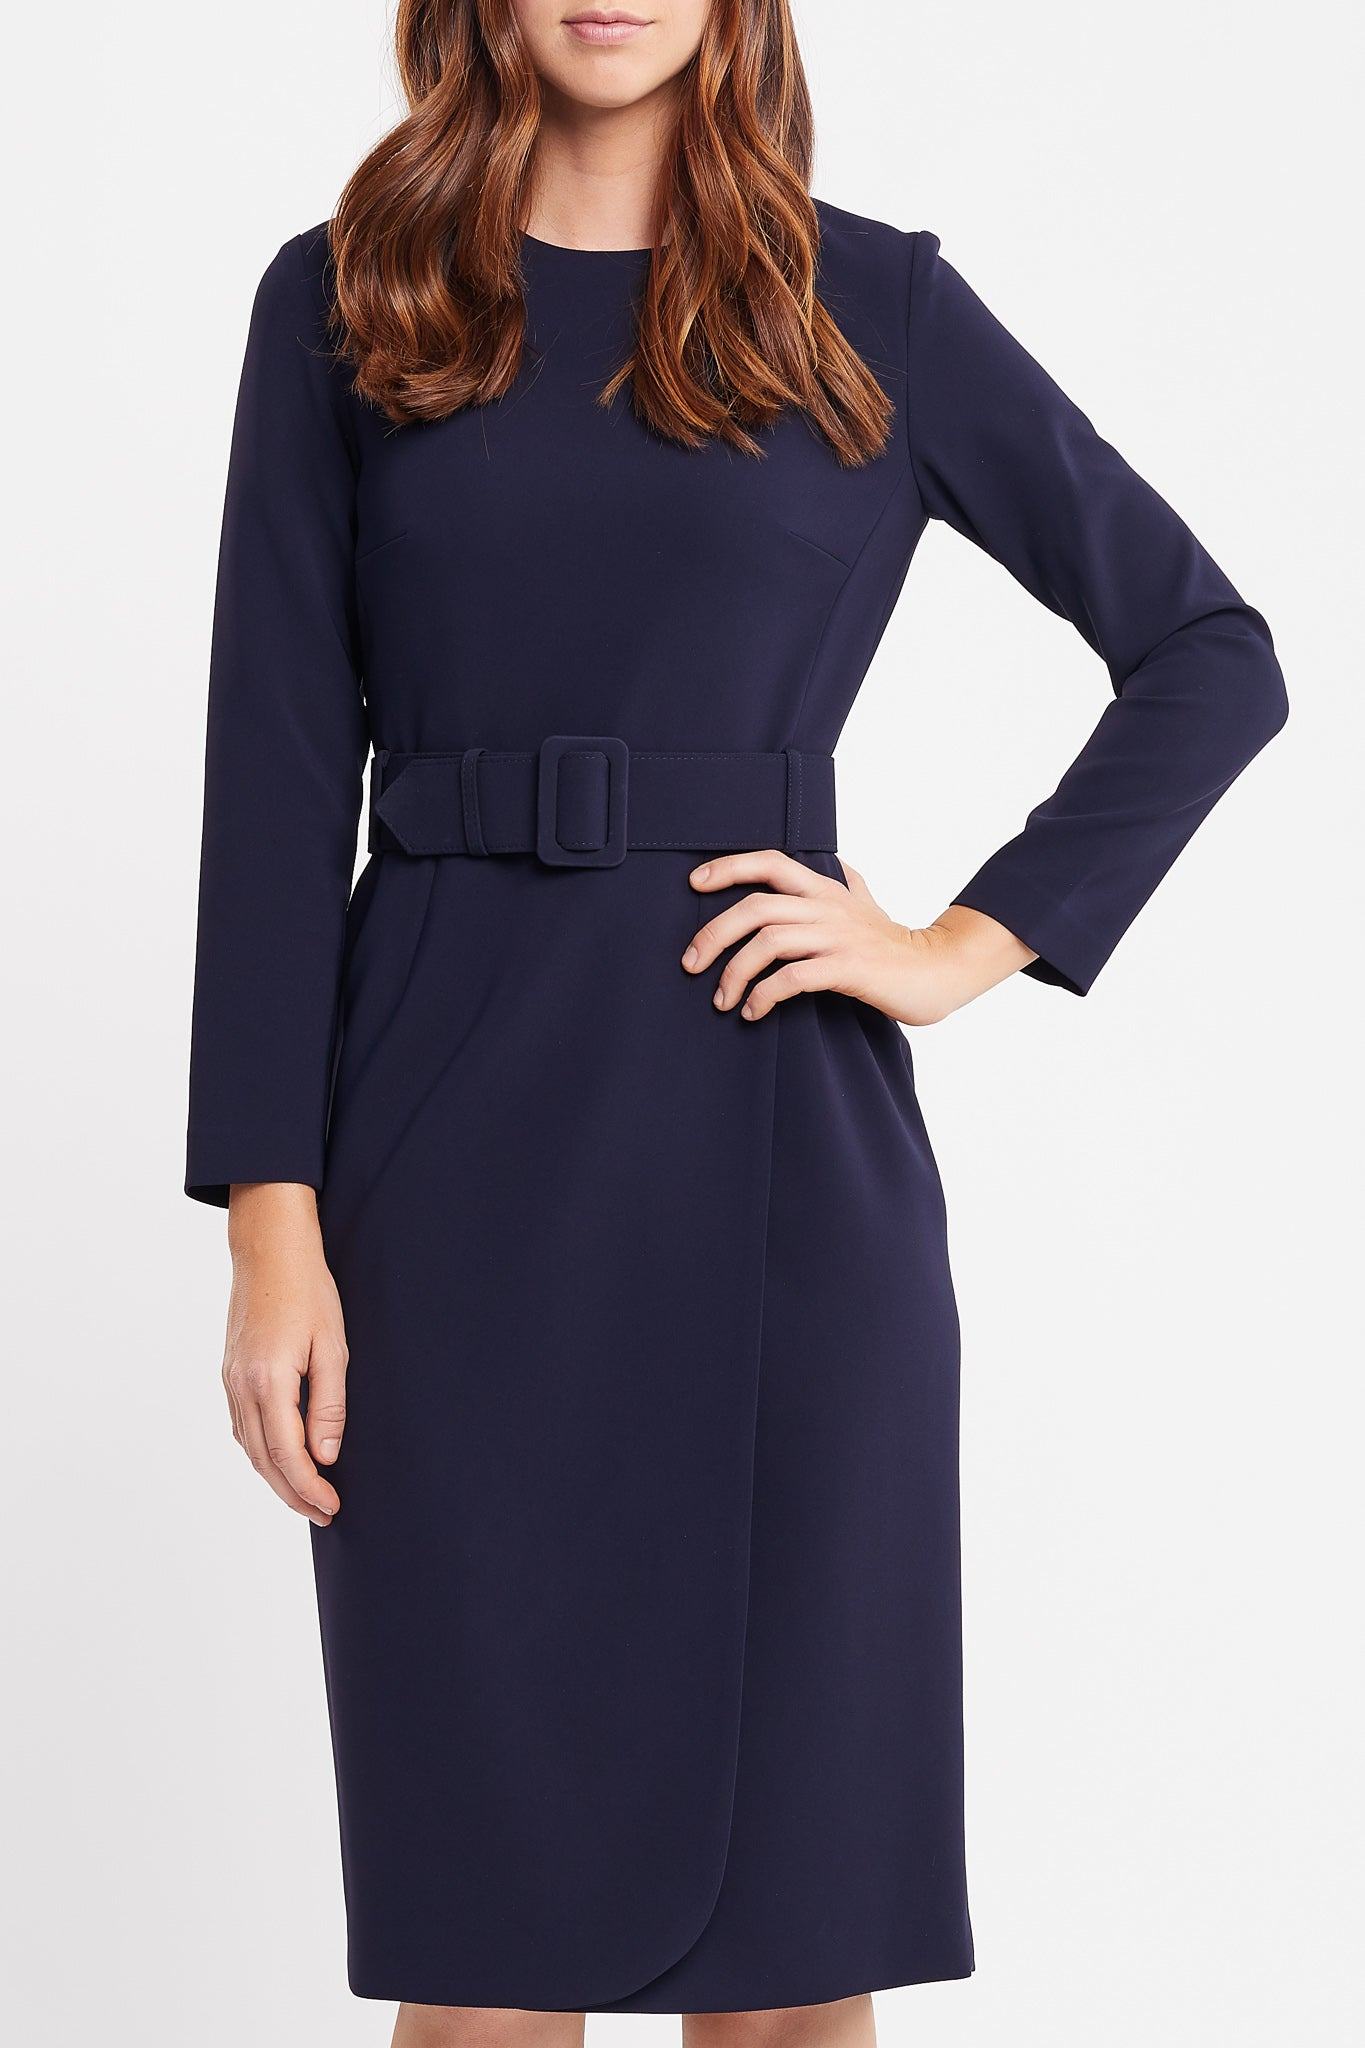 Selena Long Sleeve Sheath Navy Work Dress